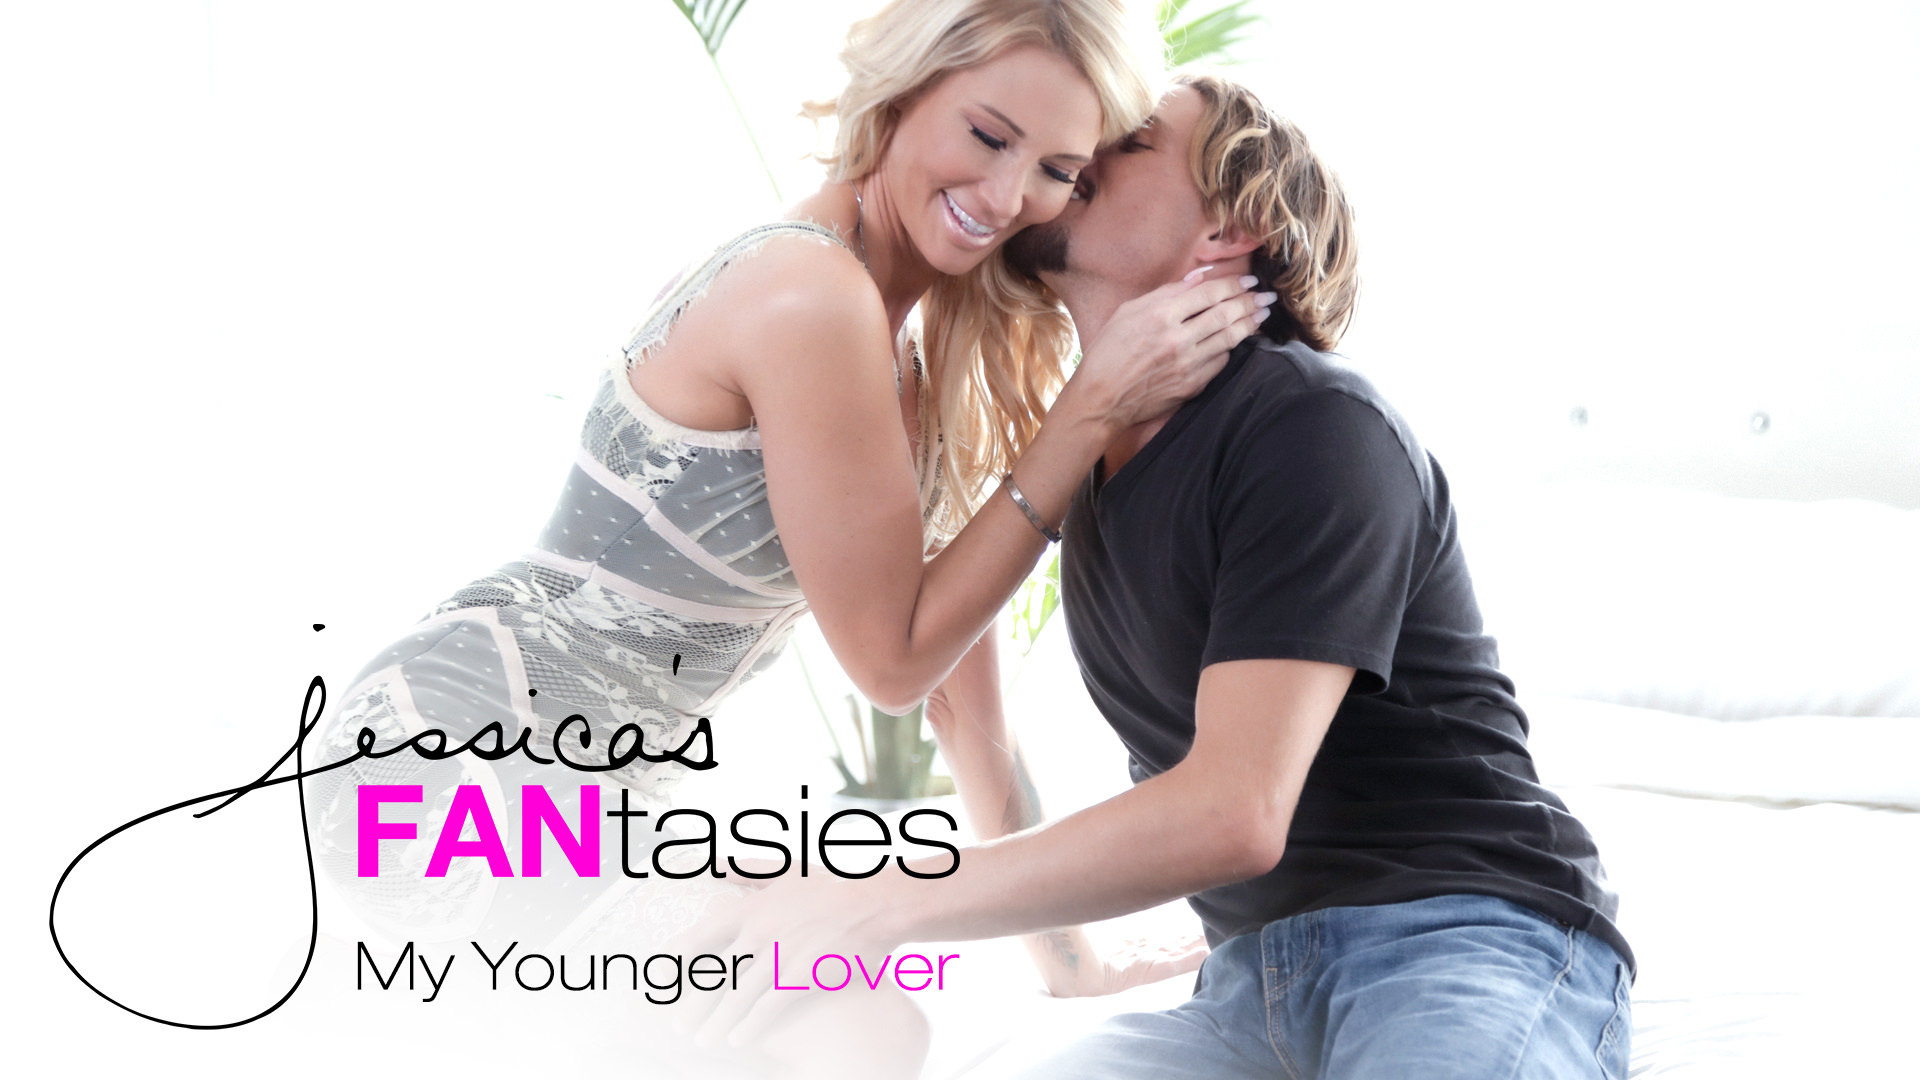 jessica's FANtasies - My Younger Lover